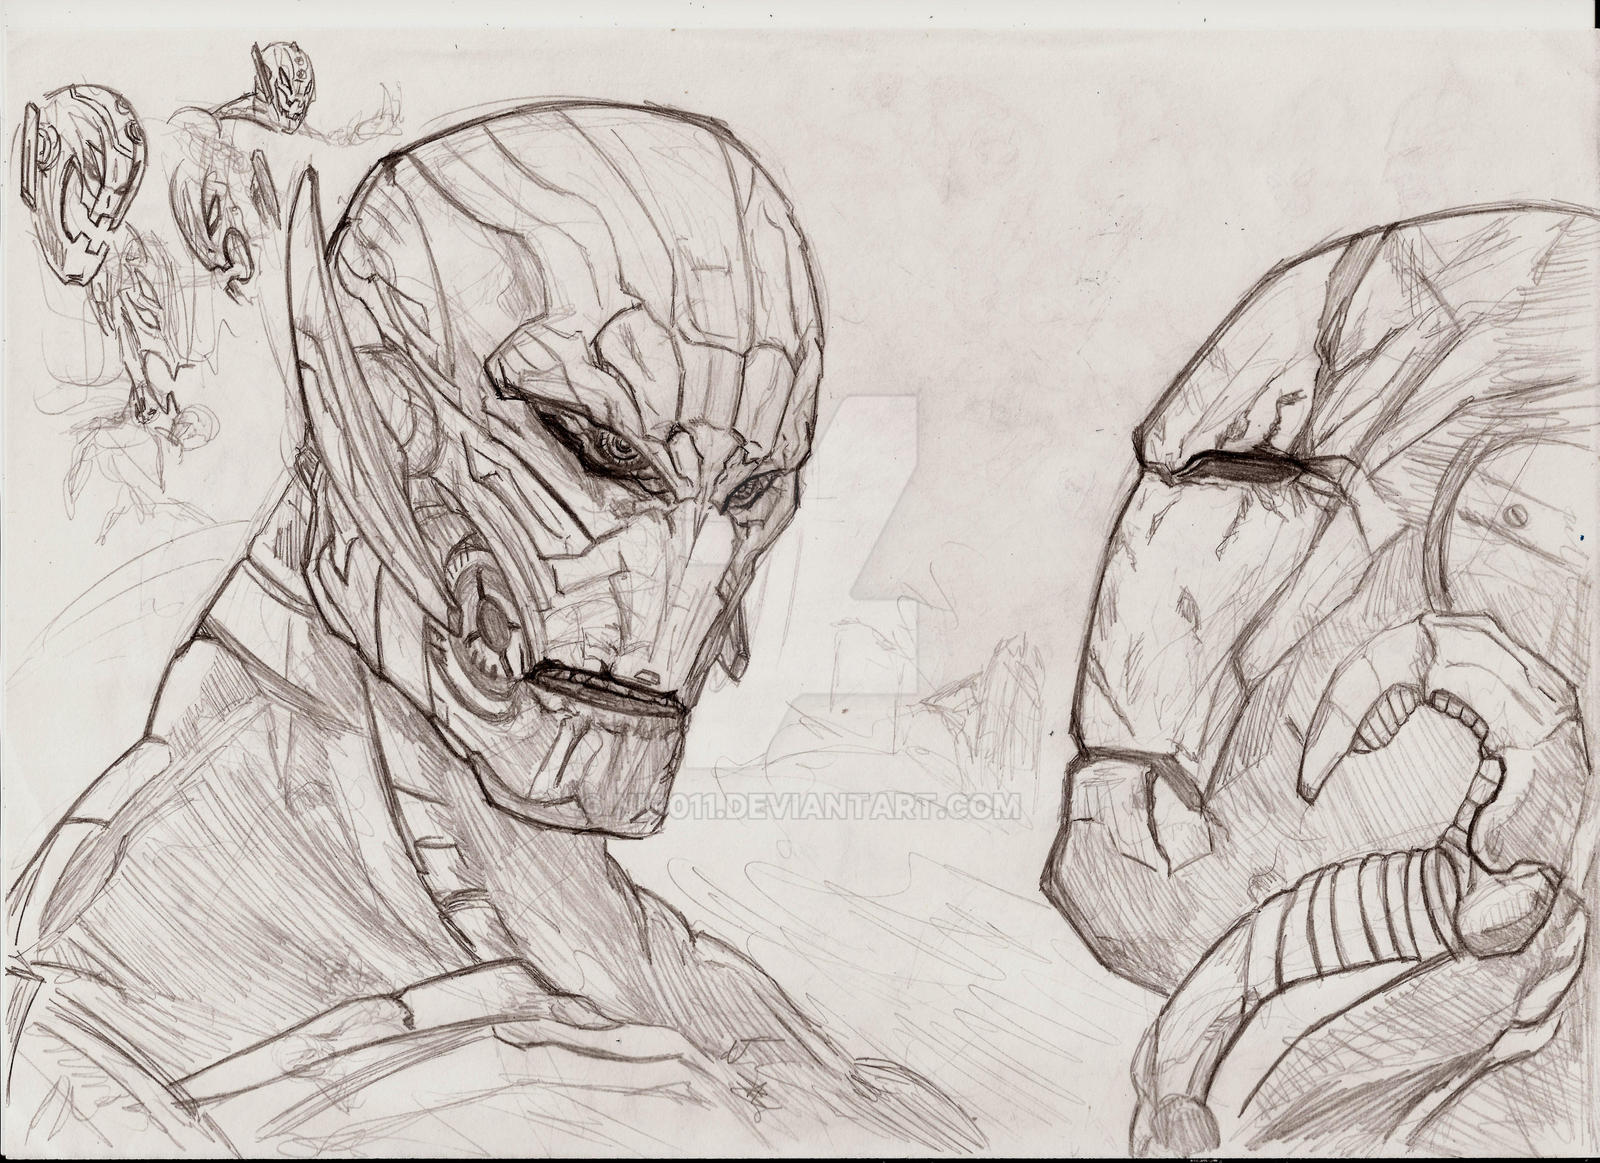 ultron there are no strings  on me by nic011